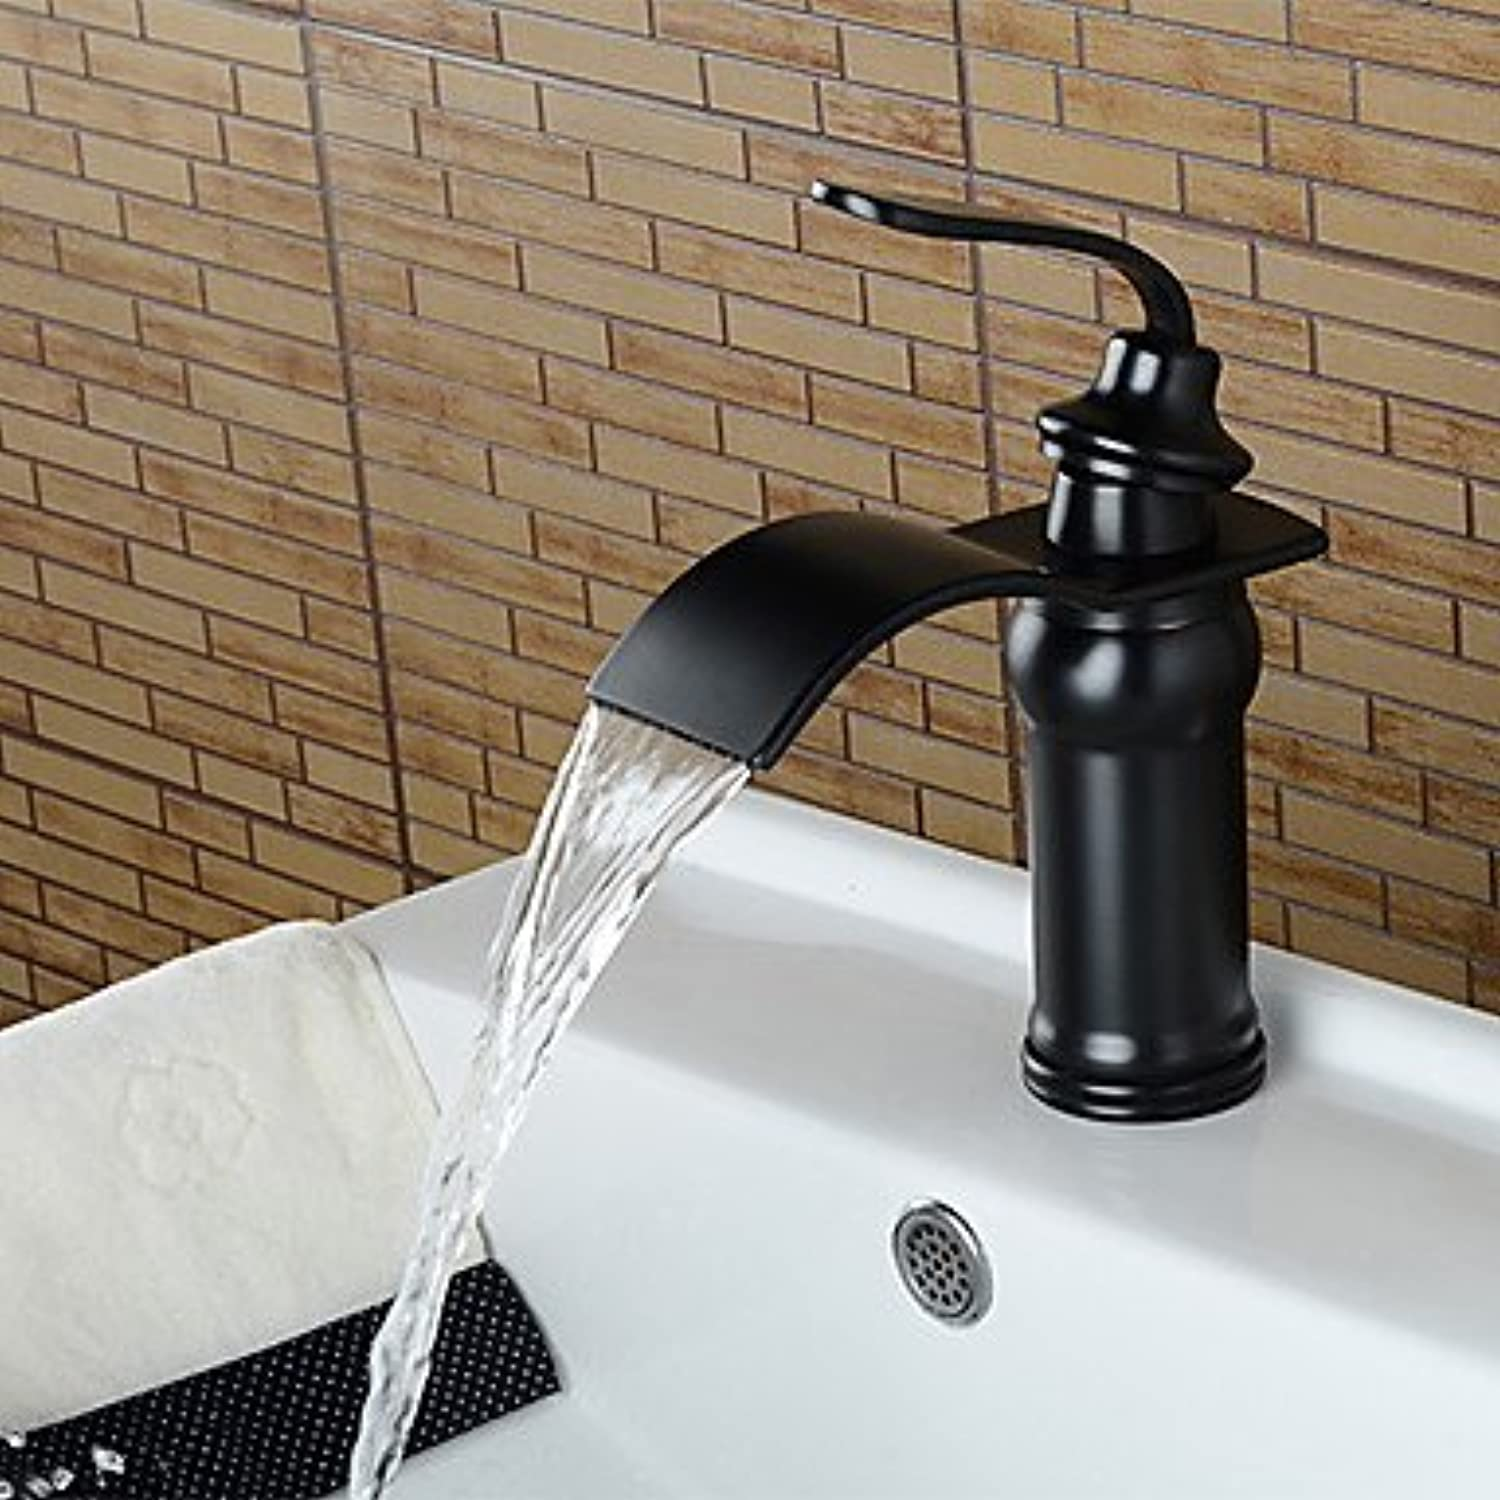 GDS Faucet£? American Standard Widespread Single Handle One Hole in Oil-rubbed Bronze Bathroom Sink Faucet , black